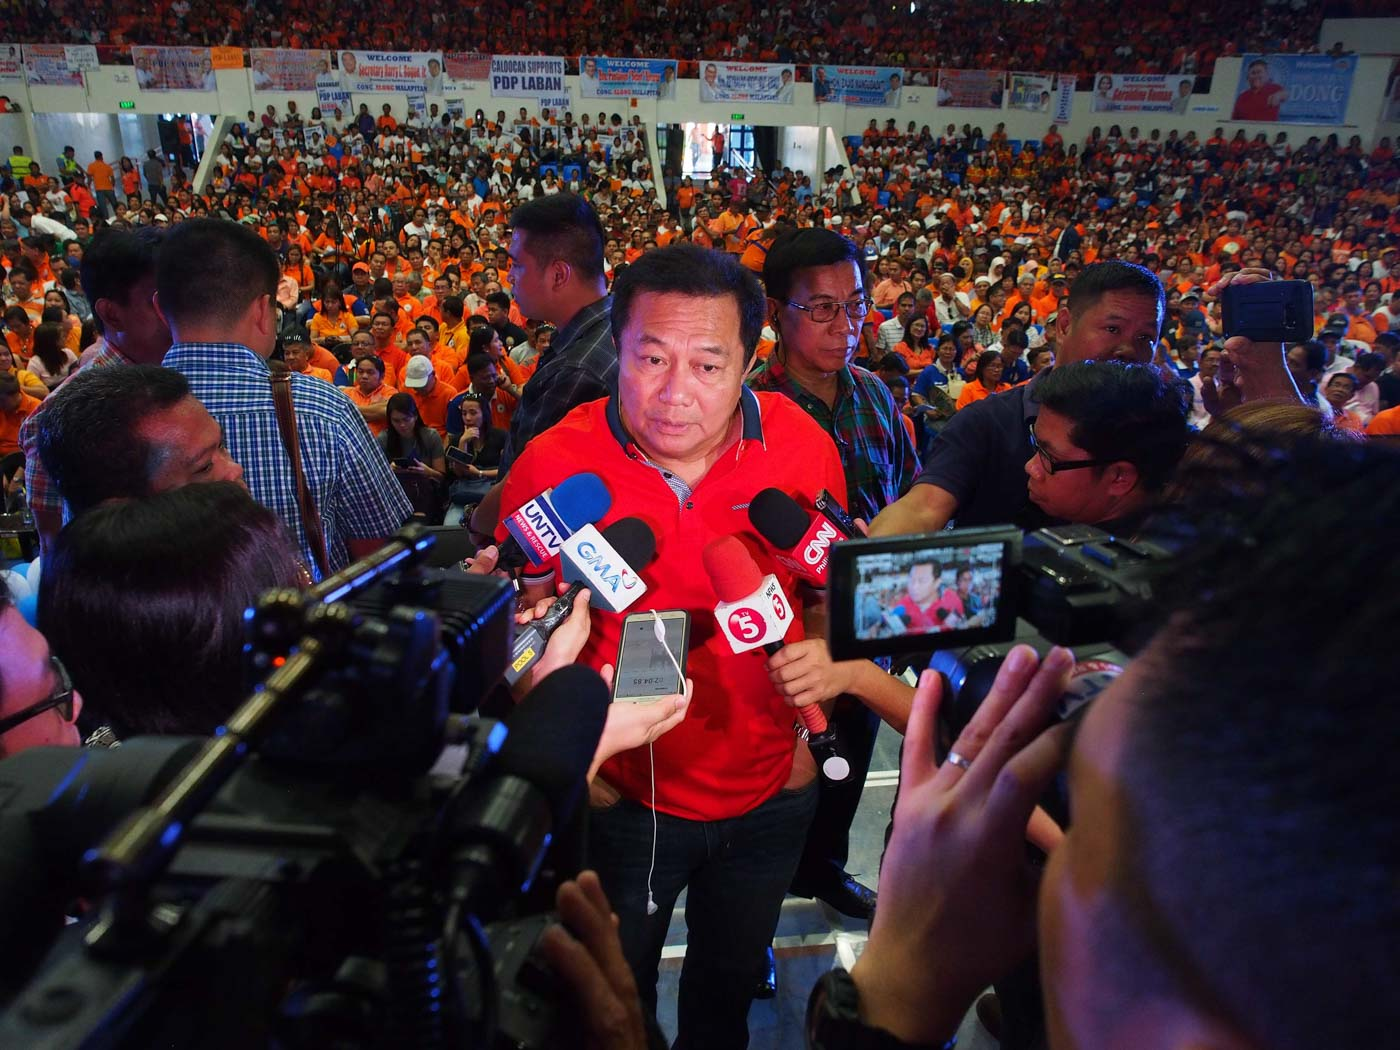 IN HOT WATER? Speaker Pantaleon Alvarez grants a media interview before leading a mass oath-taking of PDP-Laban members in Caloocan City in March 2018. File photo by House of Representatives